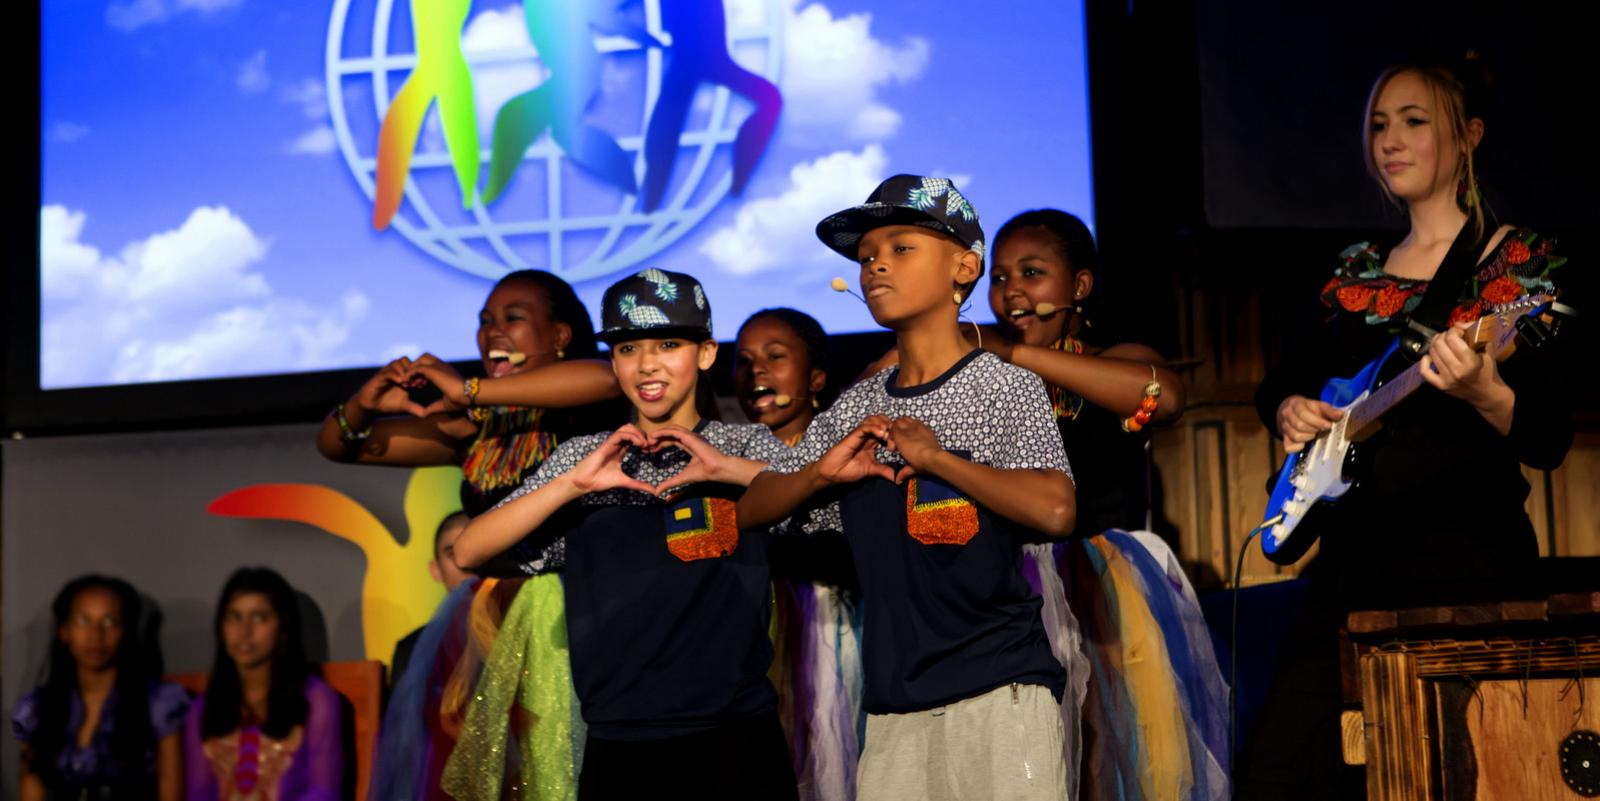 Children forming hearts with their hands while performing on stage.